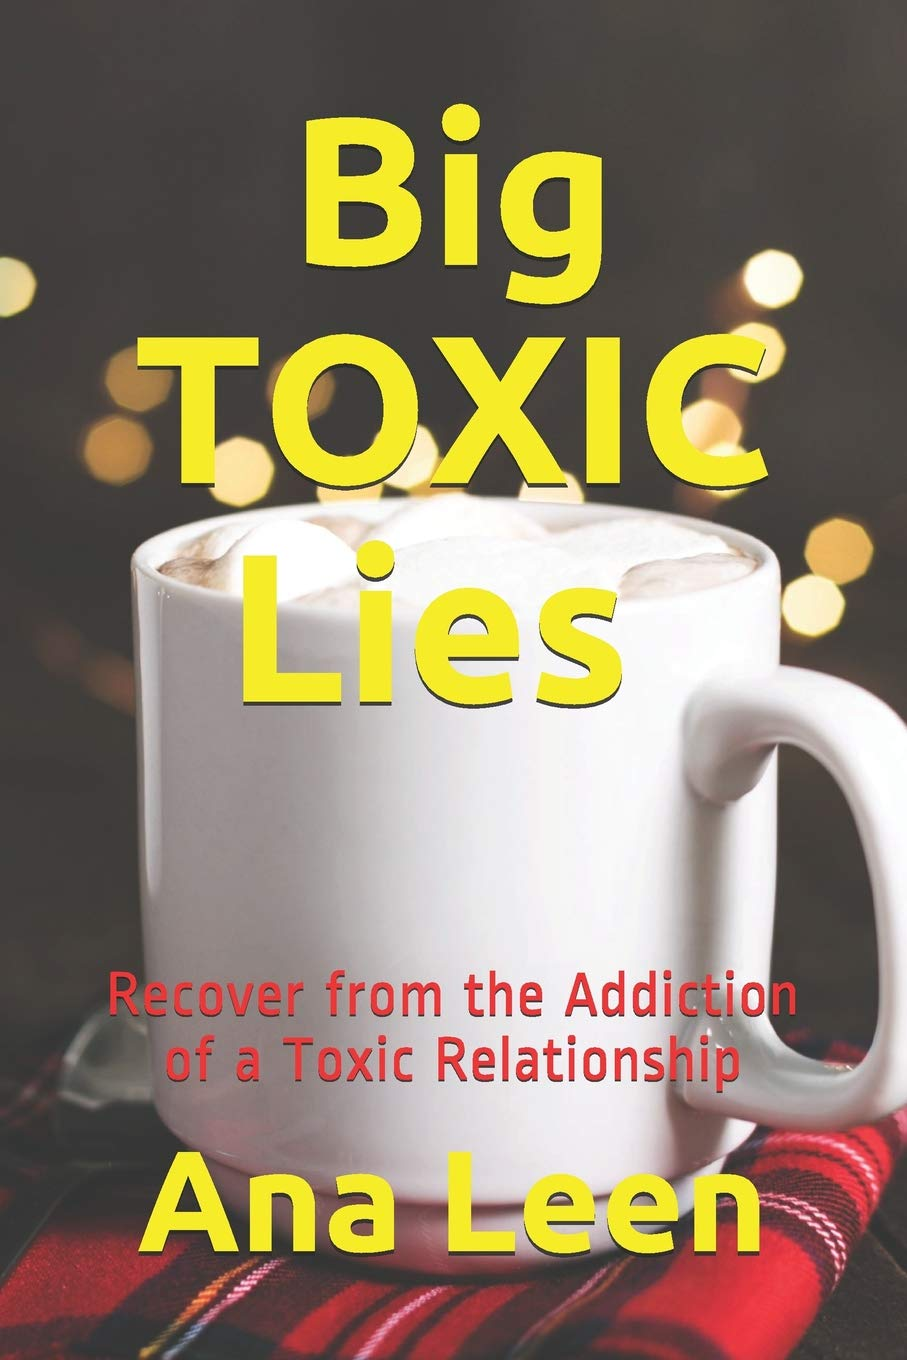 Big TOXIC Lies Recover from the Addiction of a Toxic